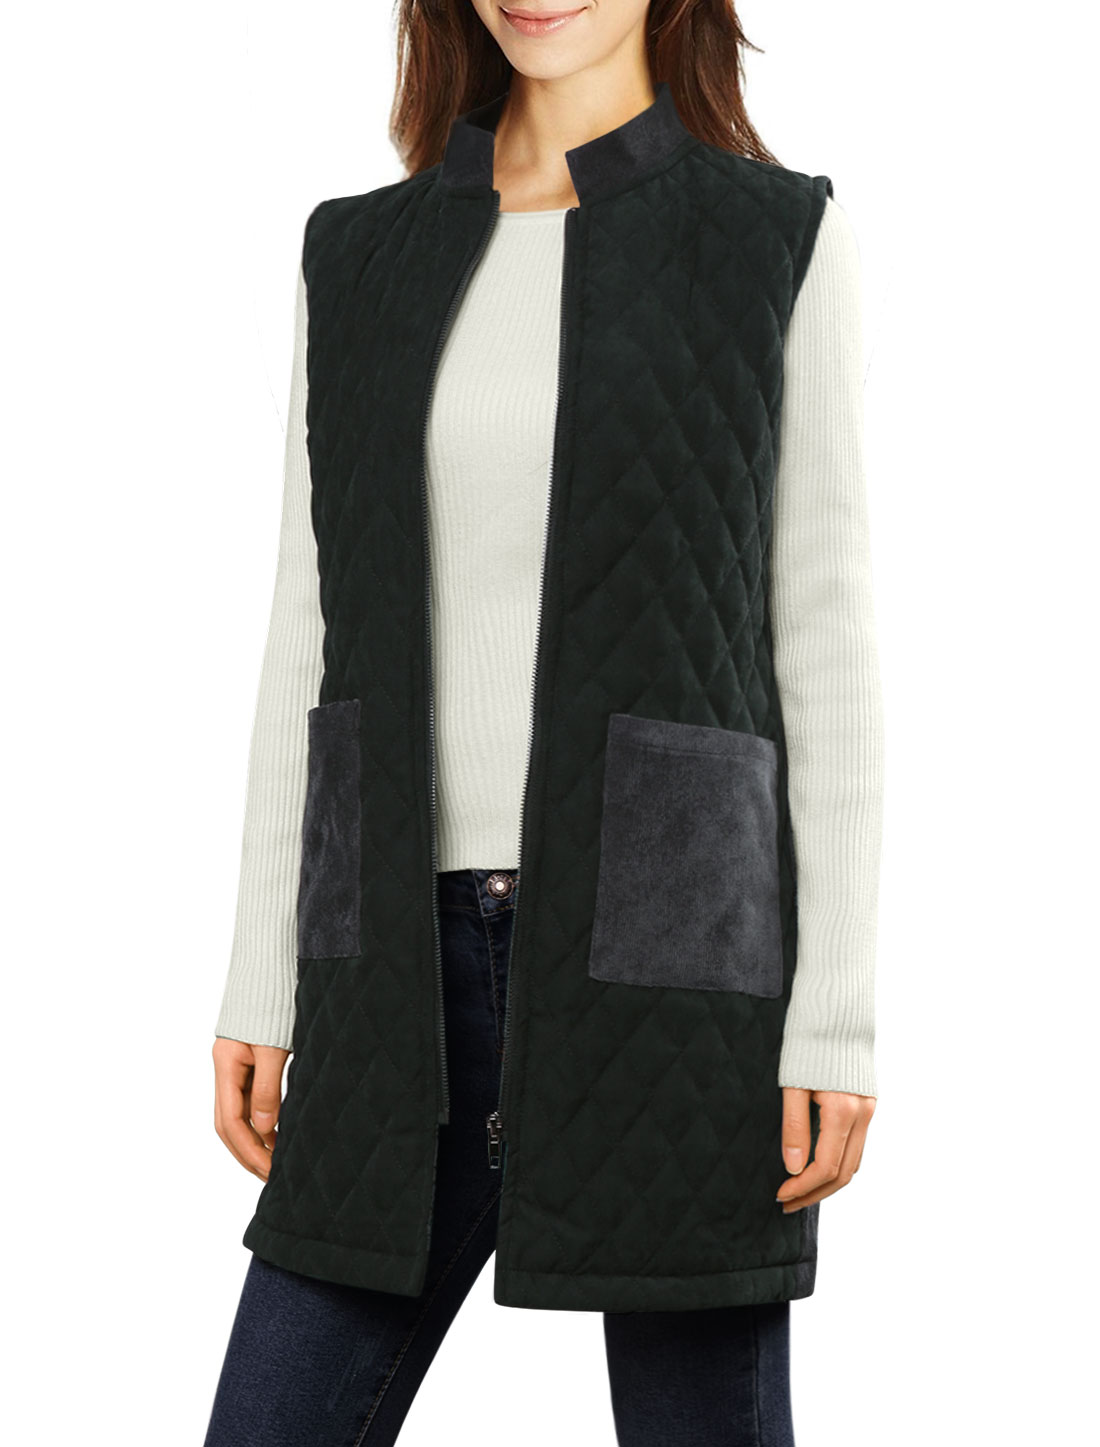 Woman Stand Collar Zip Up Corduroy Quilted Tunic Vest Charcoal Gray M